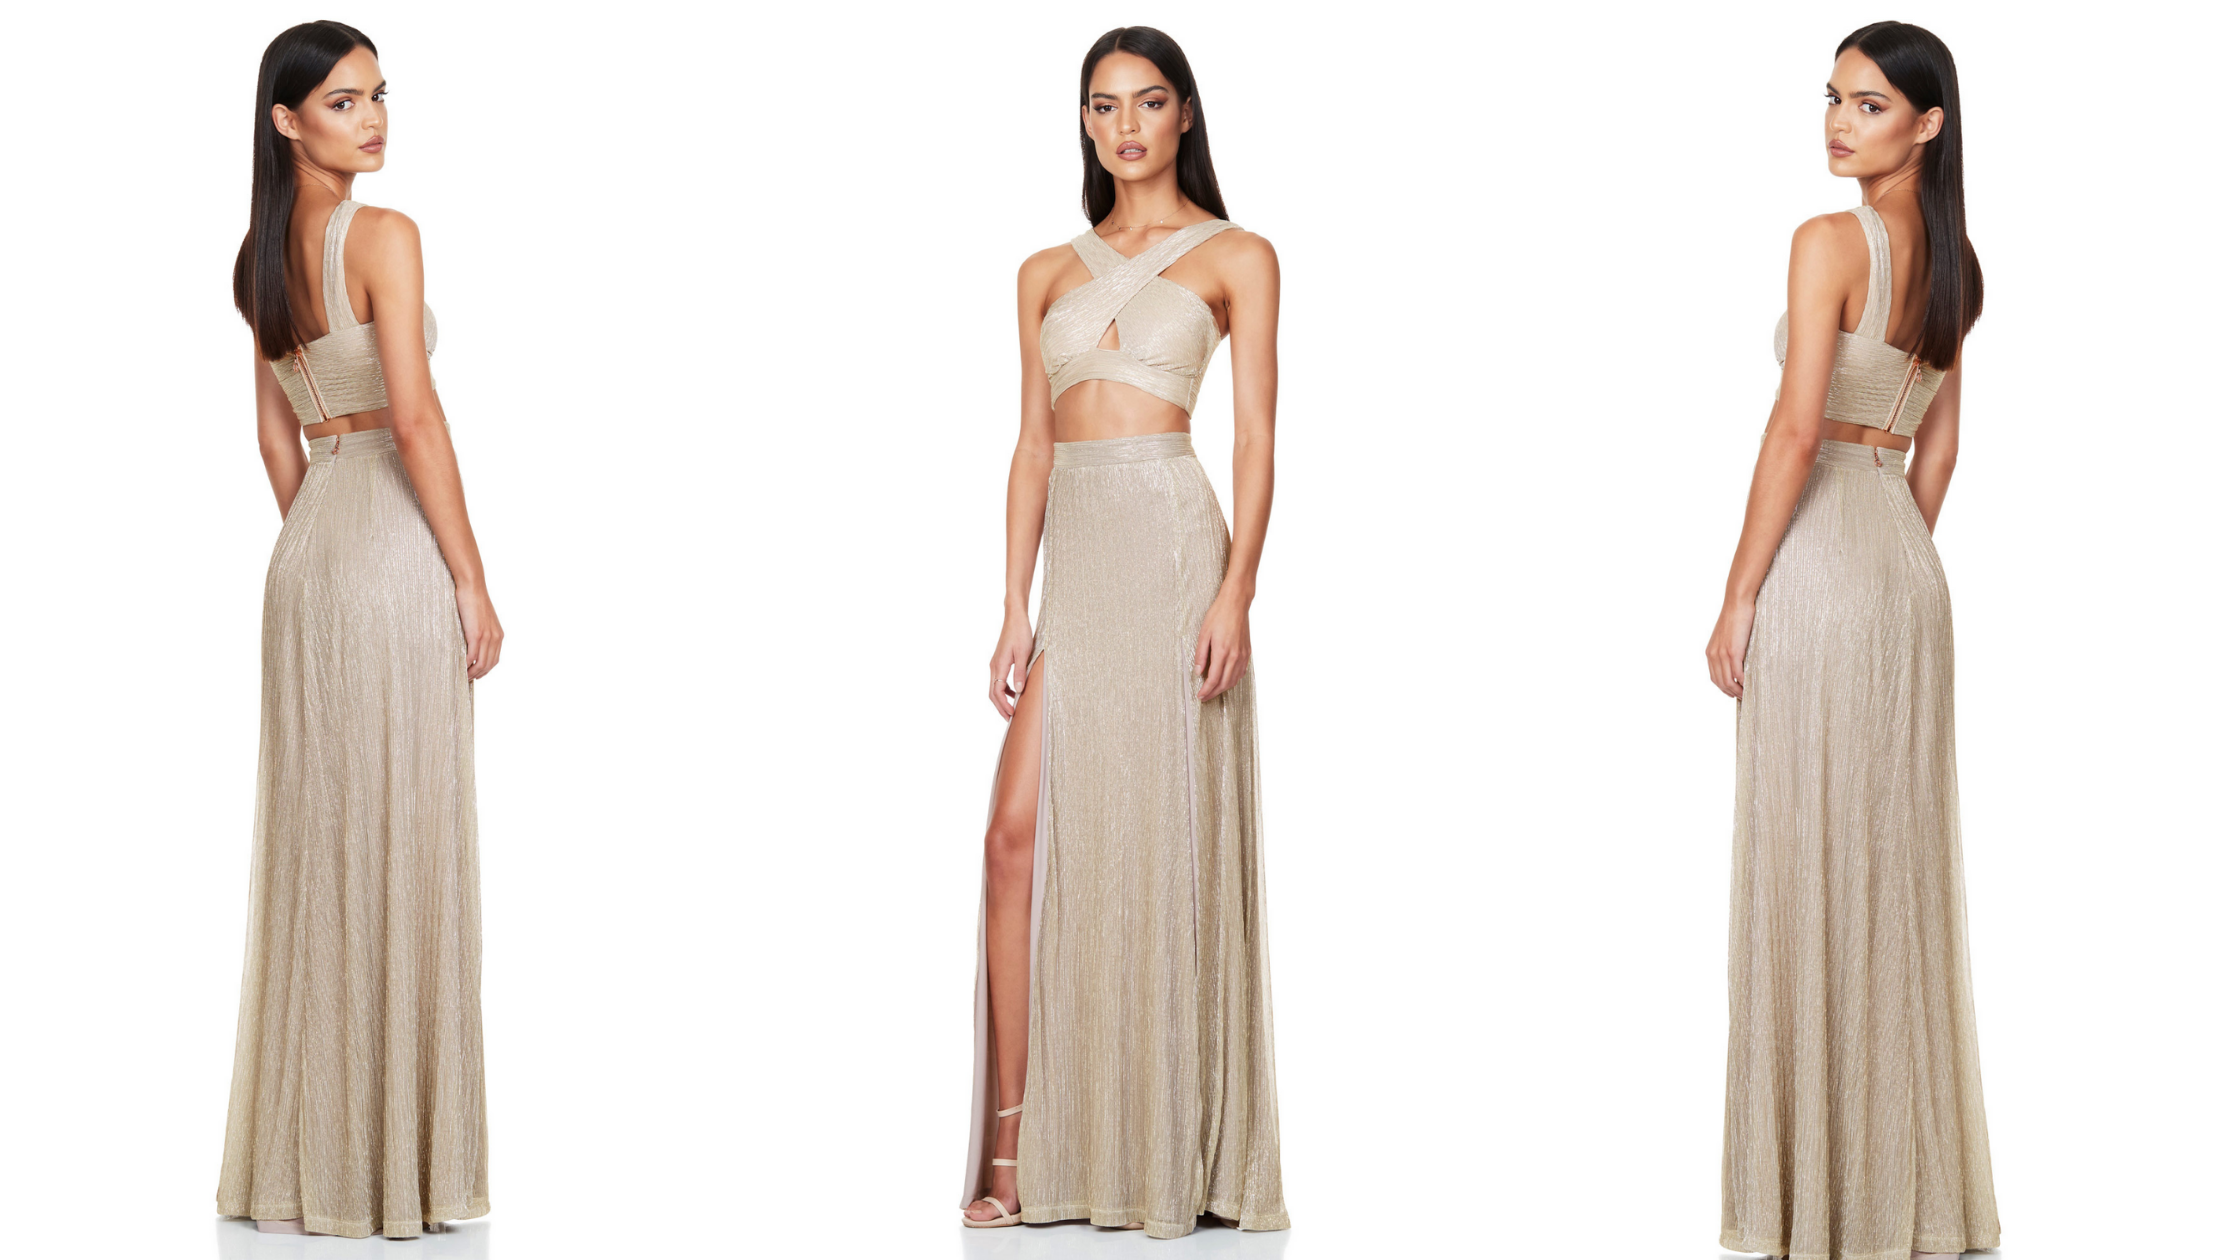 https://zetoni.com.au/collections/must-have-sparkly-and-sexy-outfits/products/alchemy-crop-top